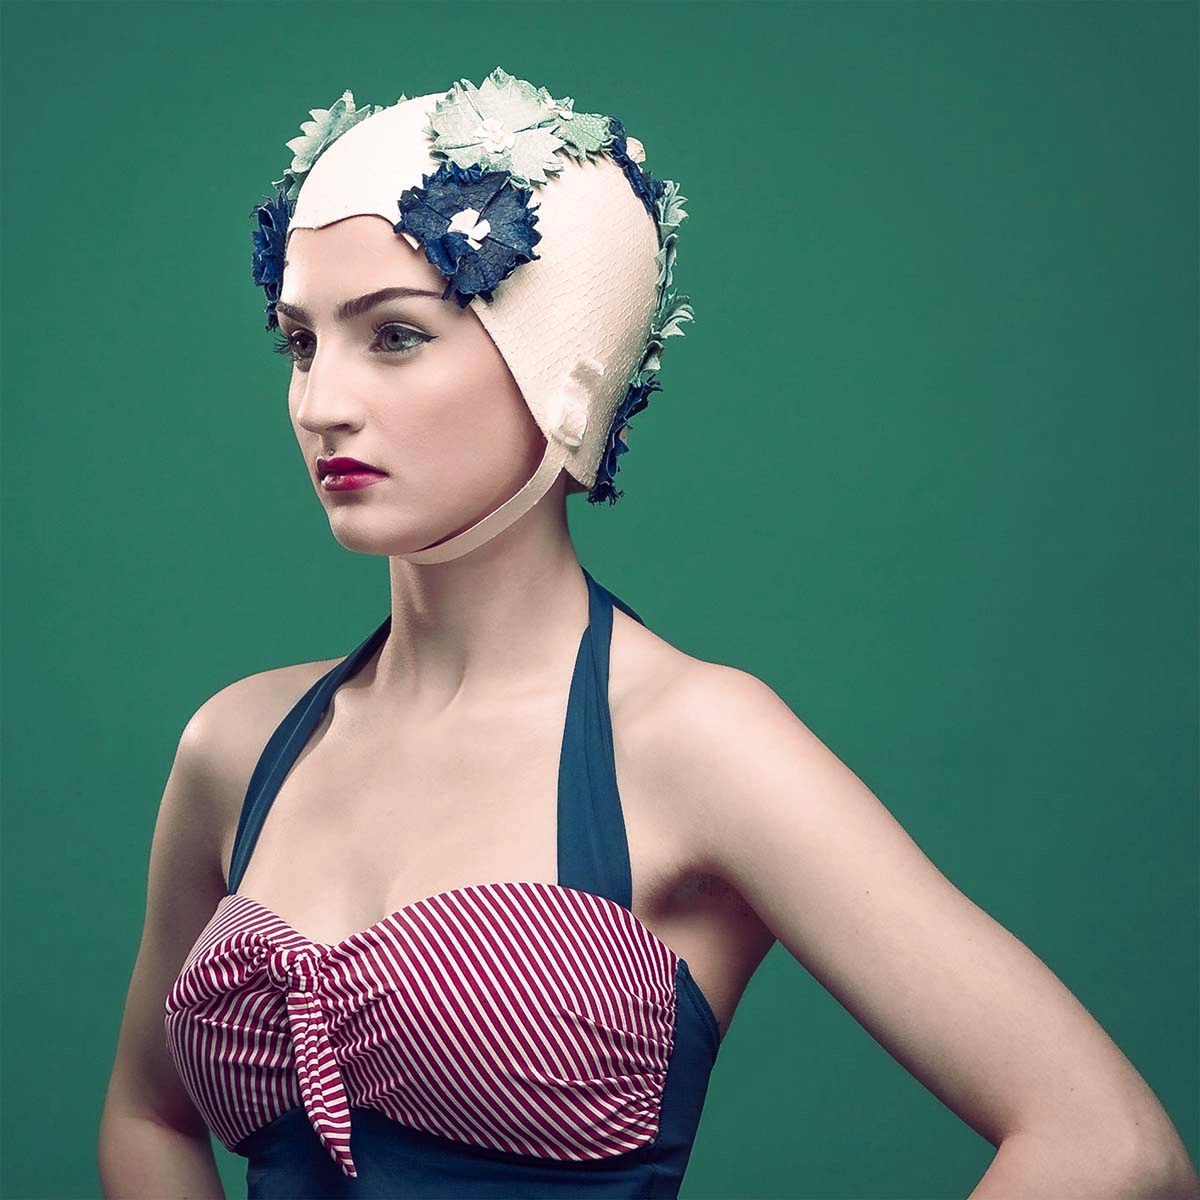 The Portrait Kitchen 'In the Swim' by Jane Fryers Millinery